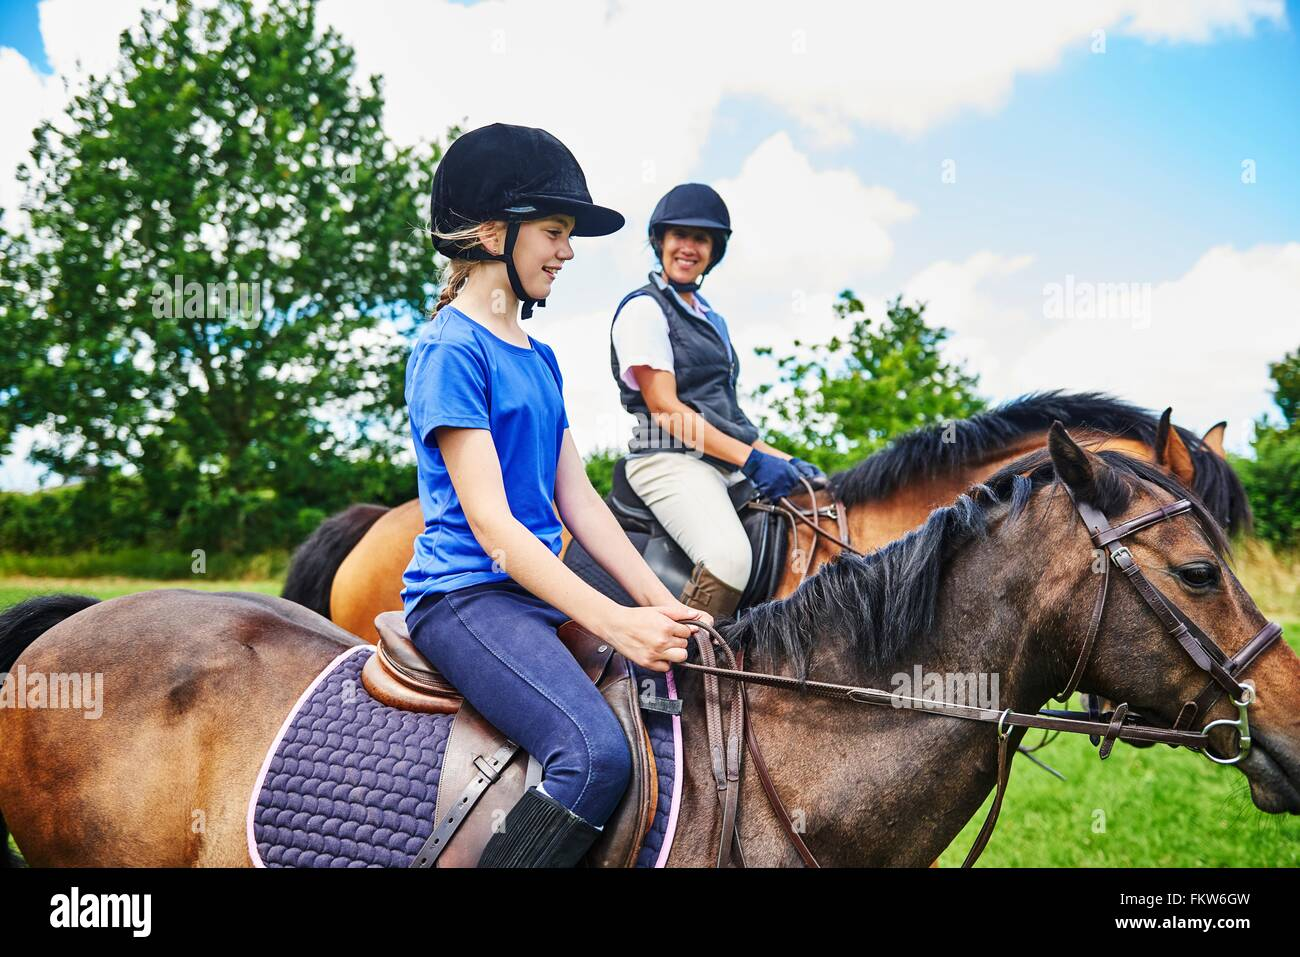 Side view of mature woman and girl on horseback wearing riding hats smiling Stock Photo